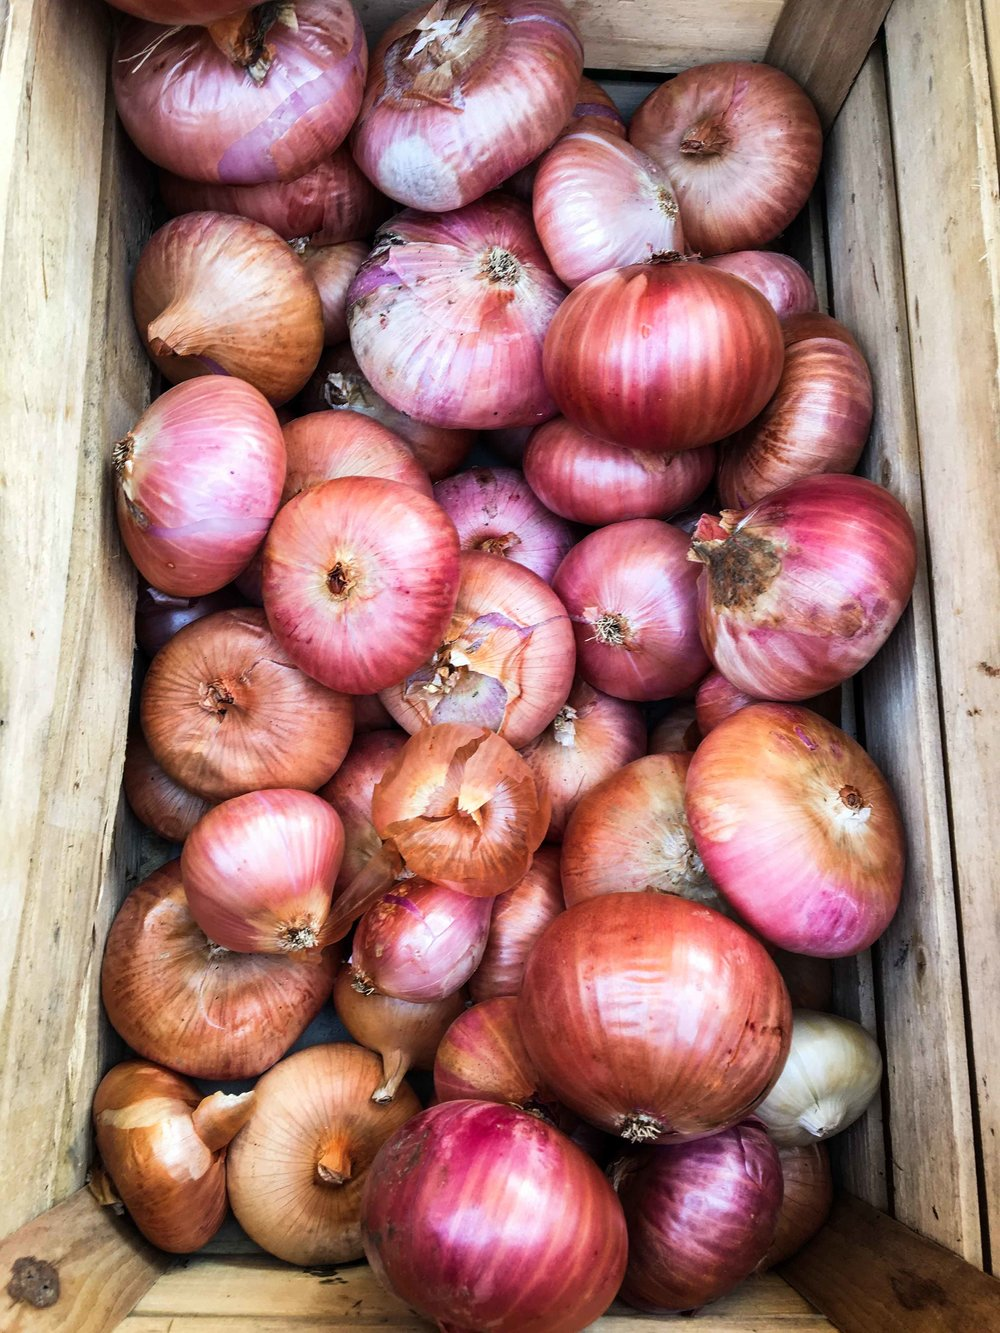 onions from reggio emilia September